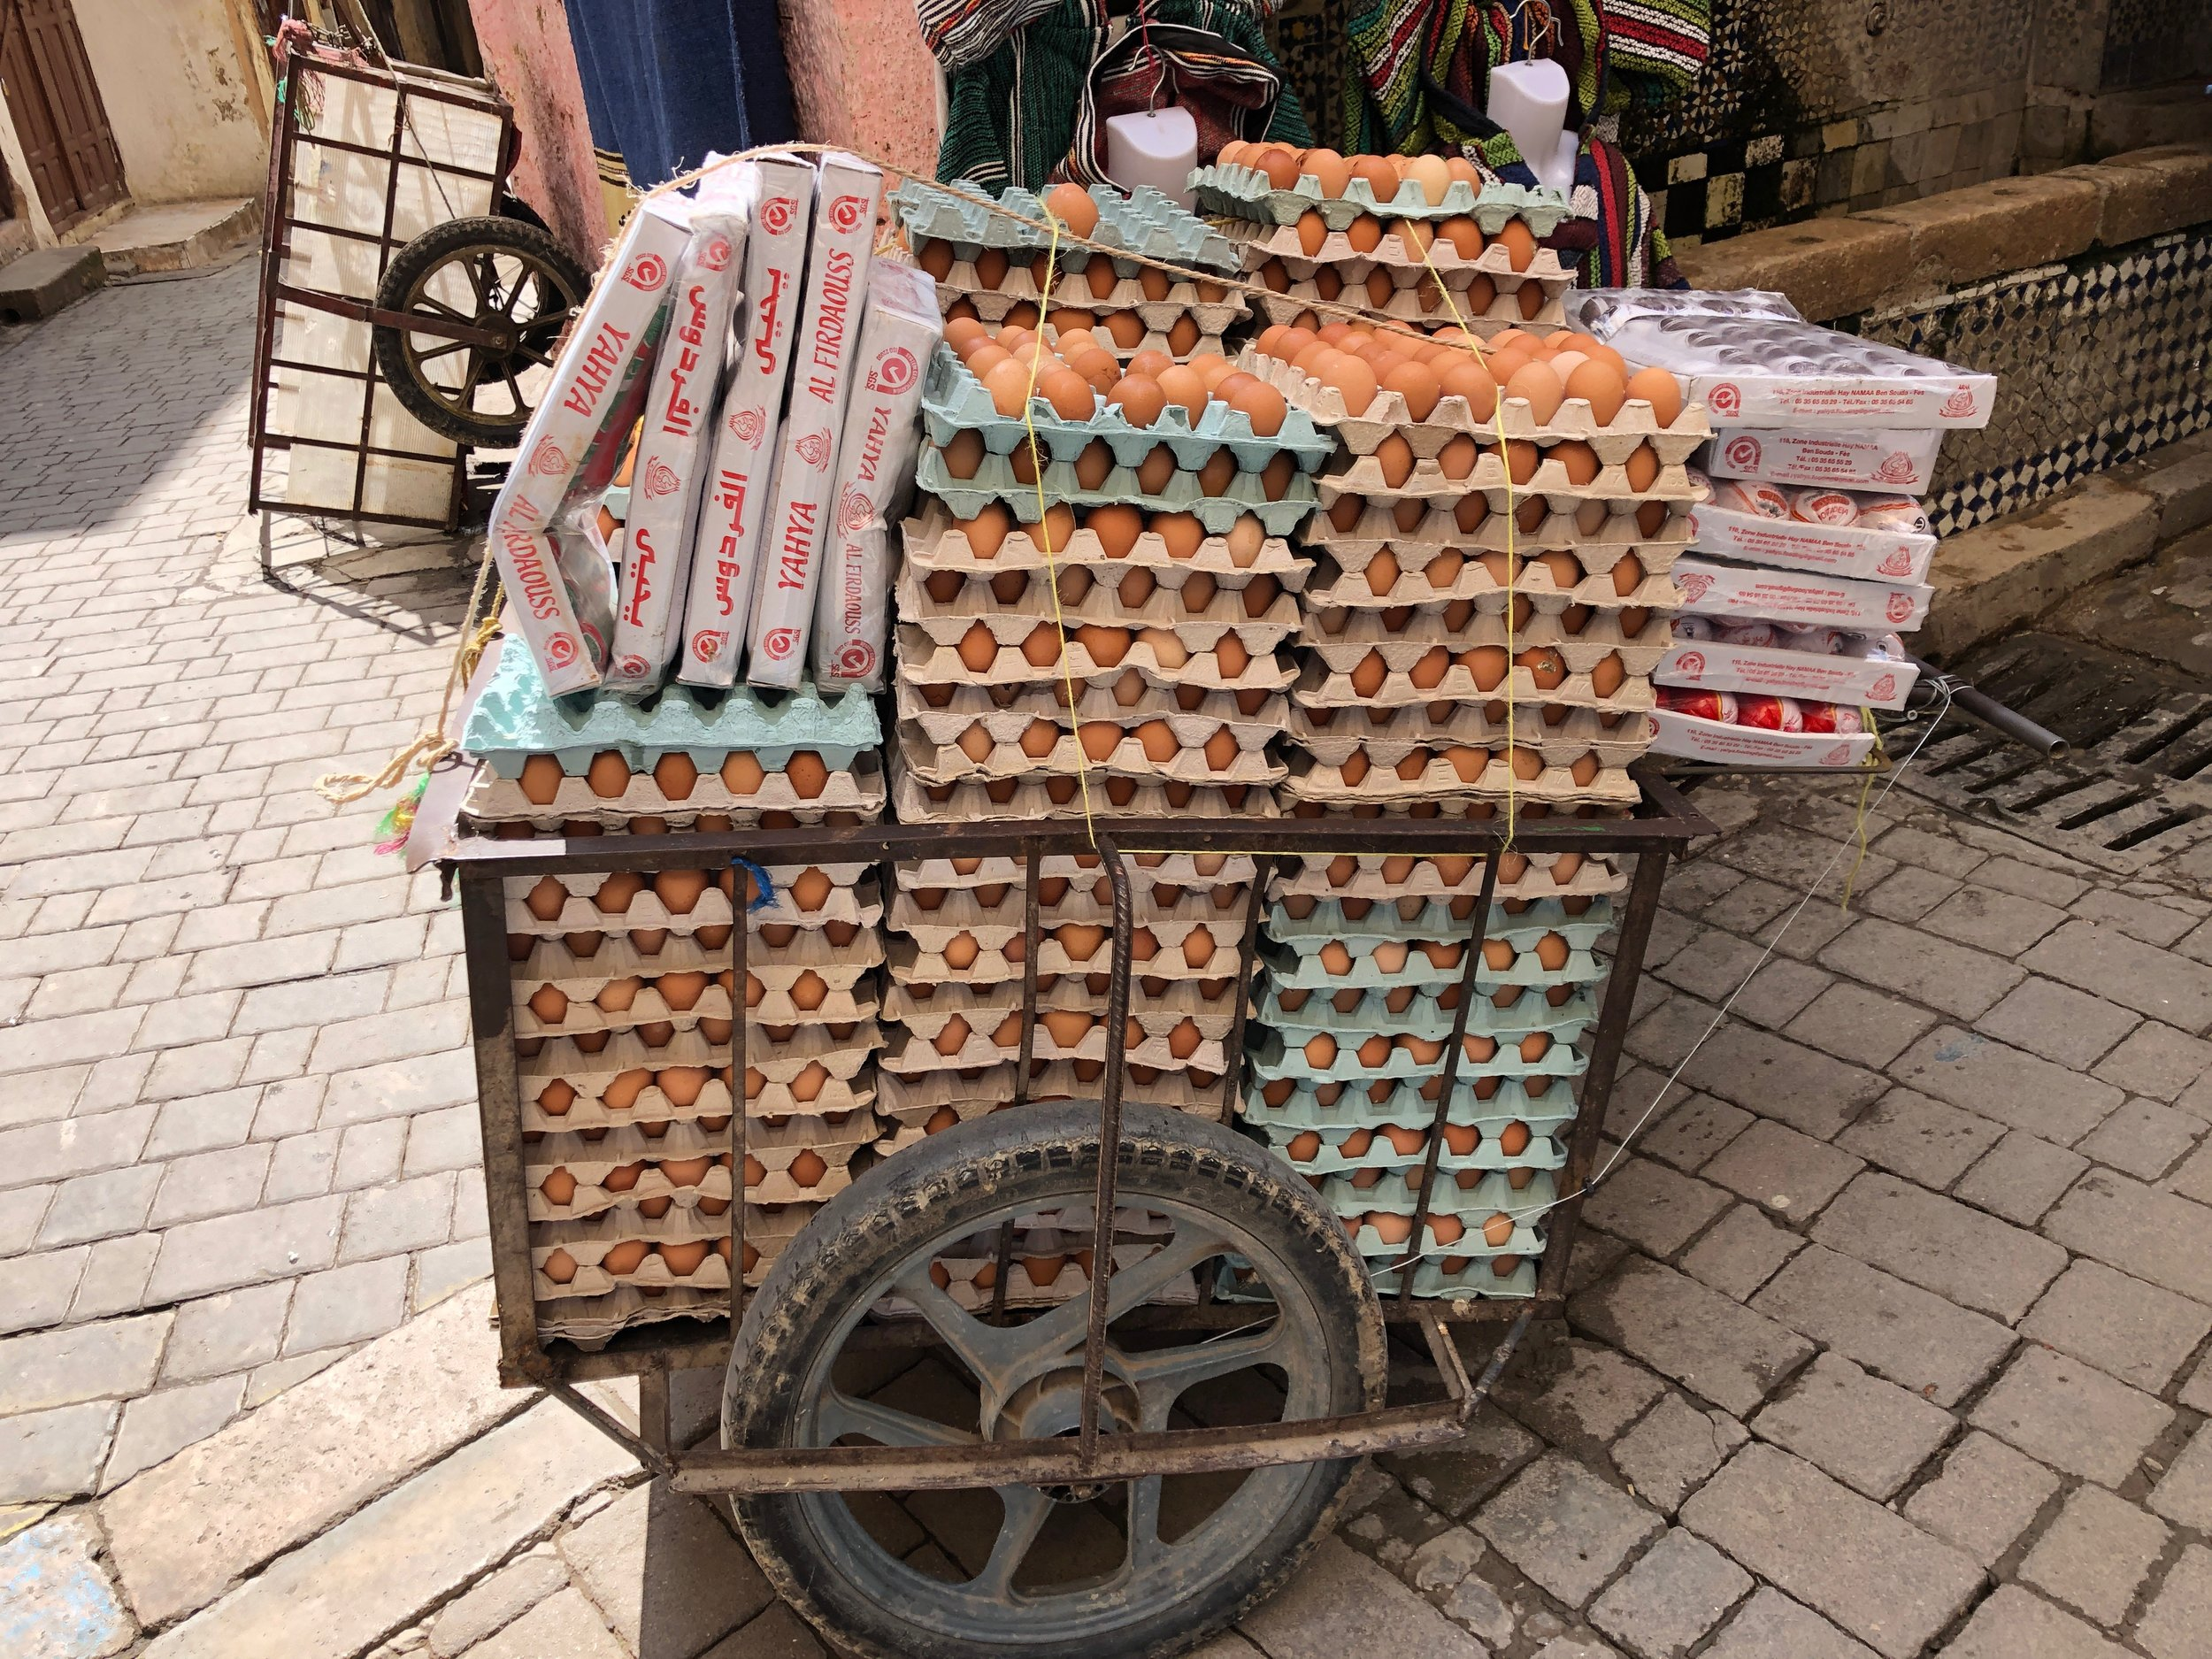 Eggs being delivered in the medina